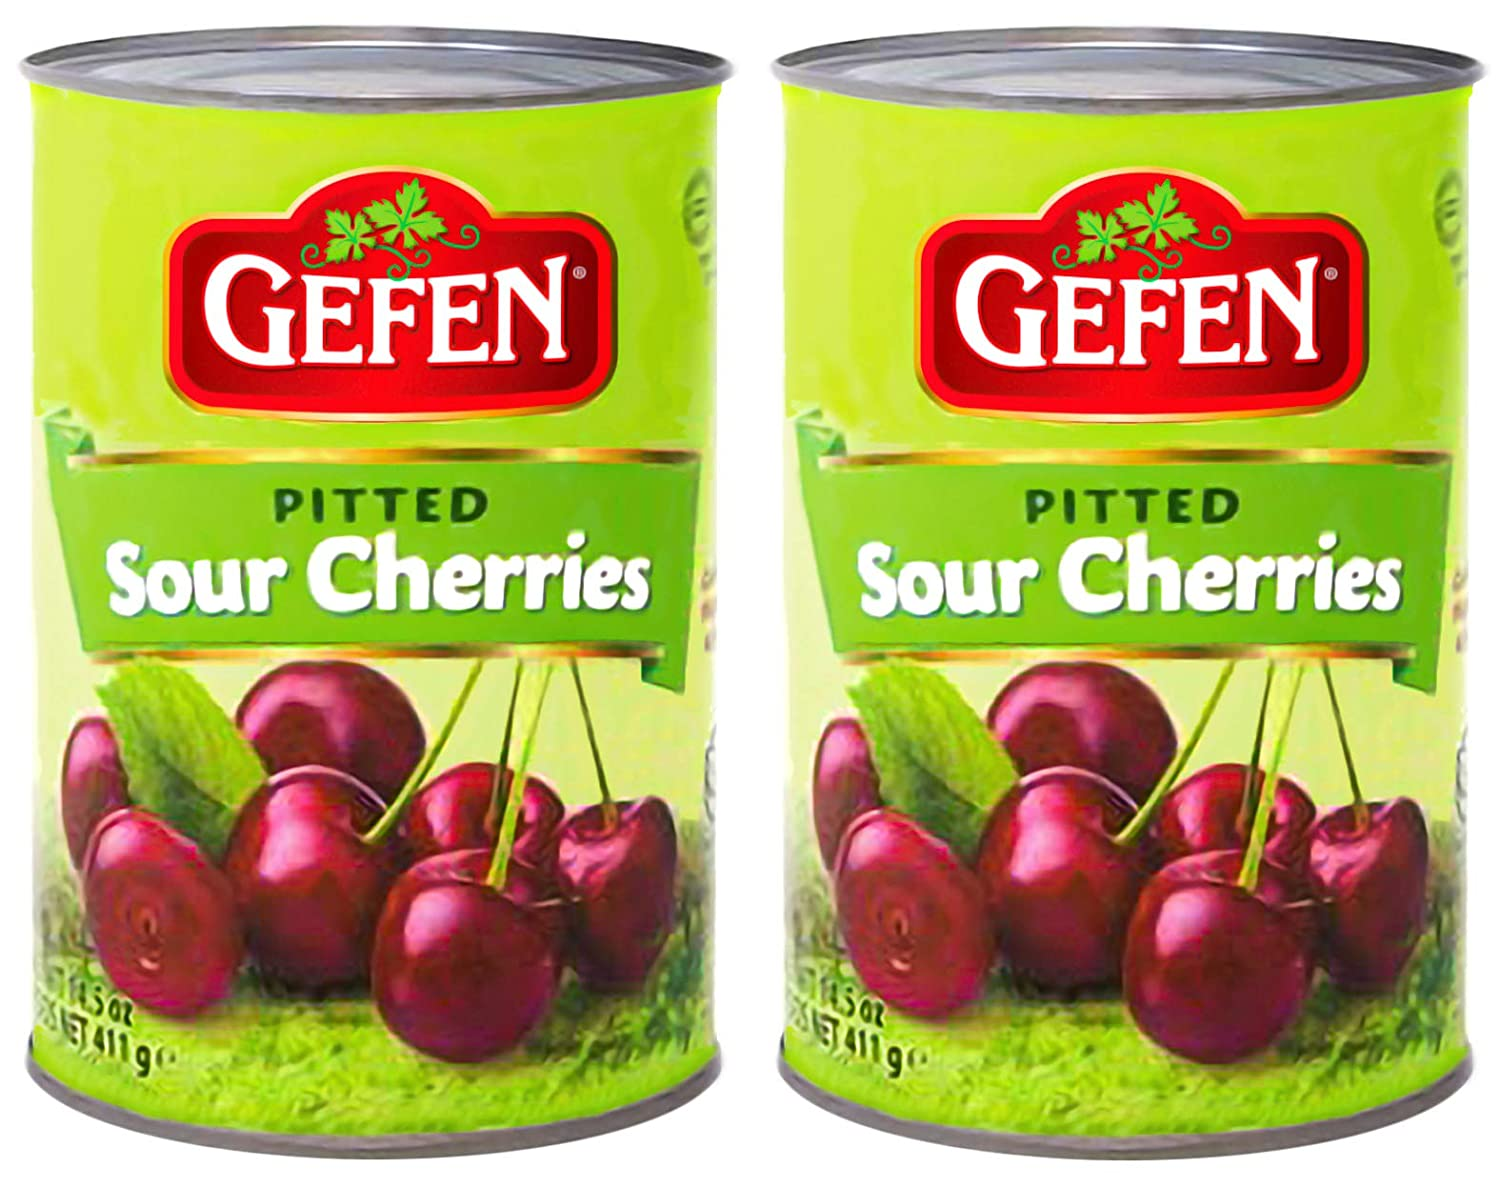 Gefen Pitted Sour Tart Cherries 14.5 oz (2 PACK) In Water, Two Ingredients Only, Nothing Artificial, Gluten Free, Premium Quality!